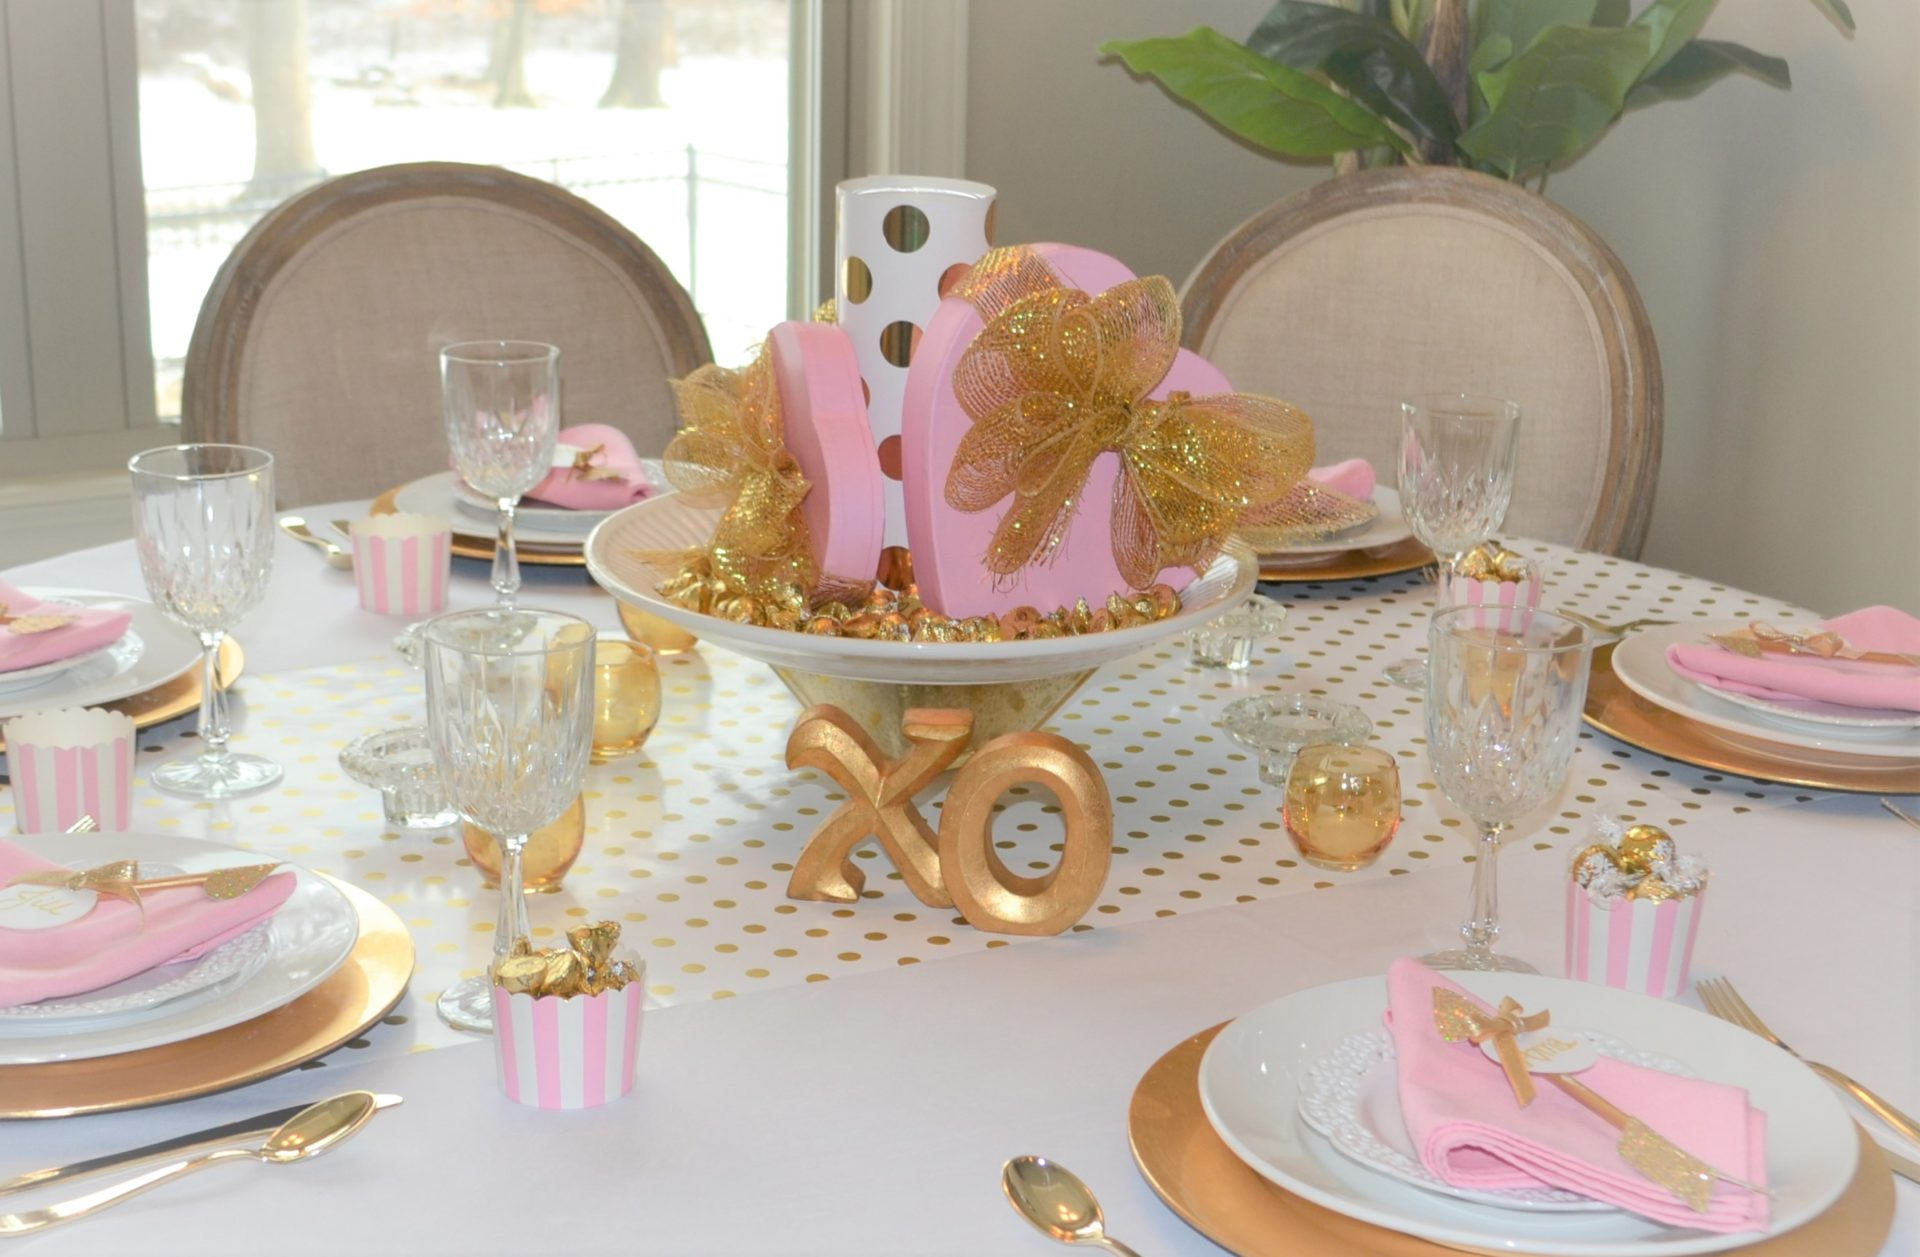 & Best Pink u0026 Gold Table Setting - Liz Bushong